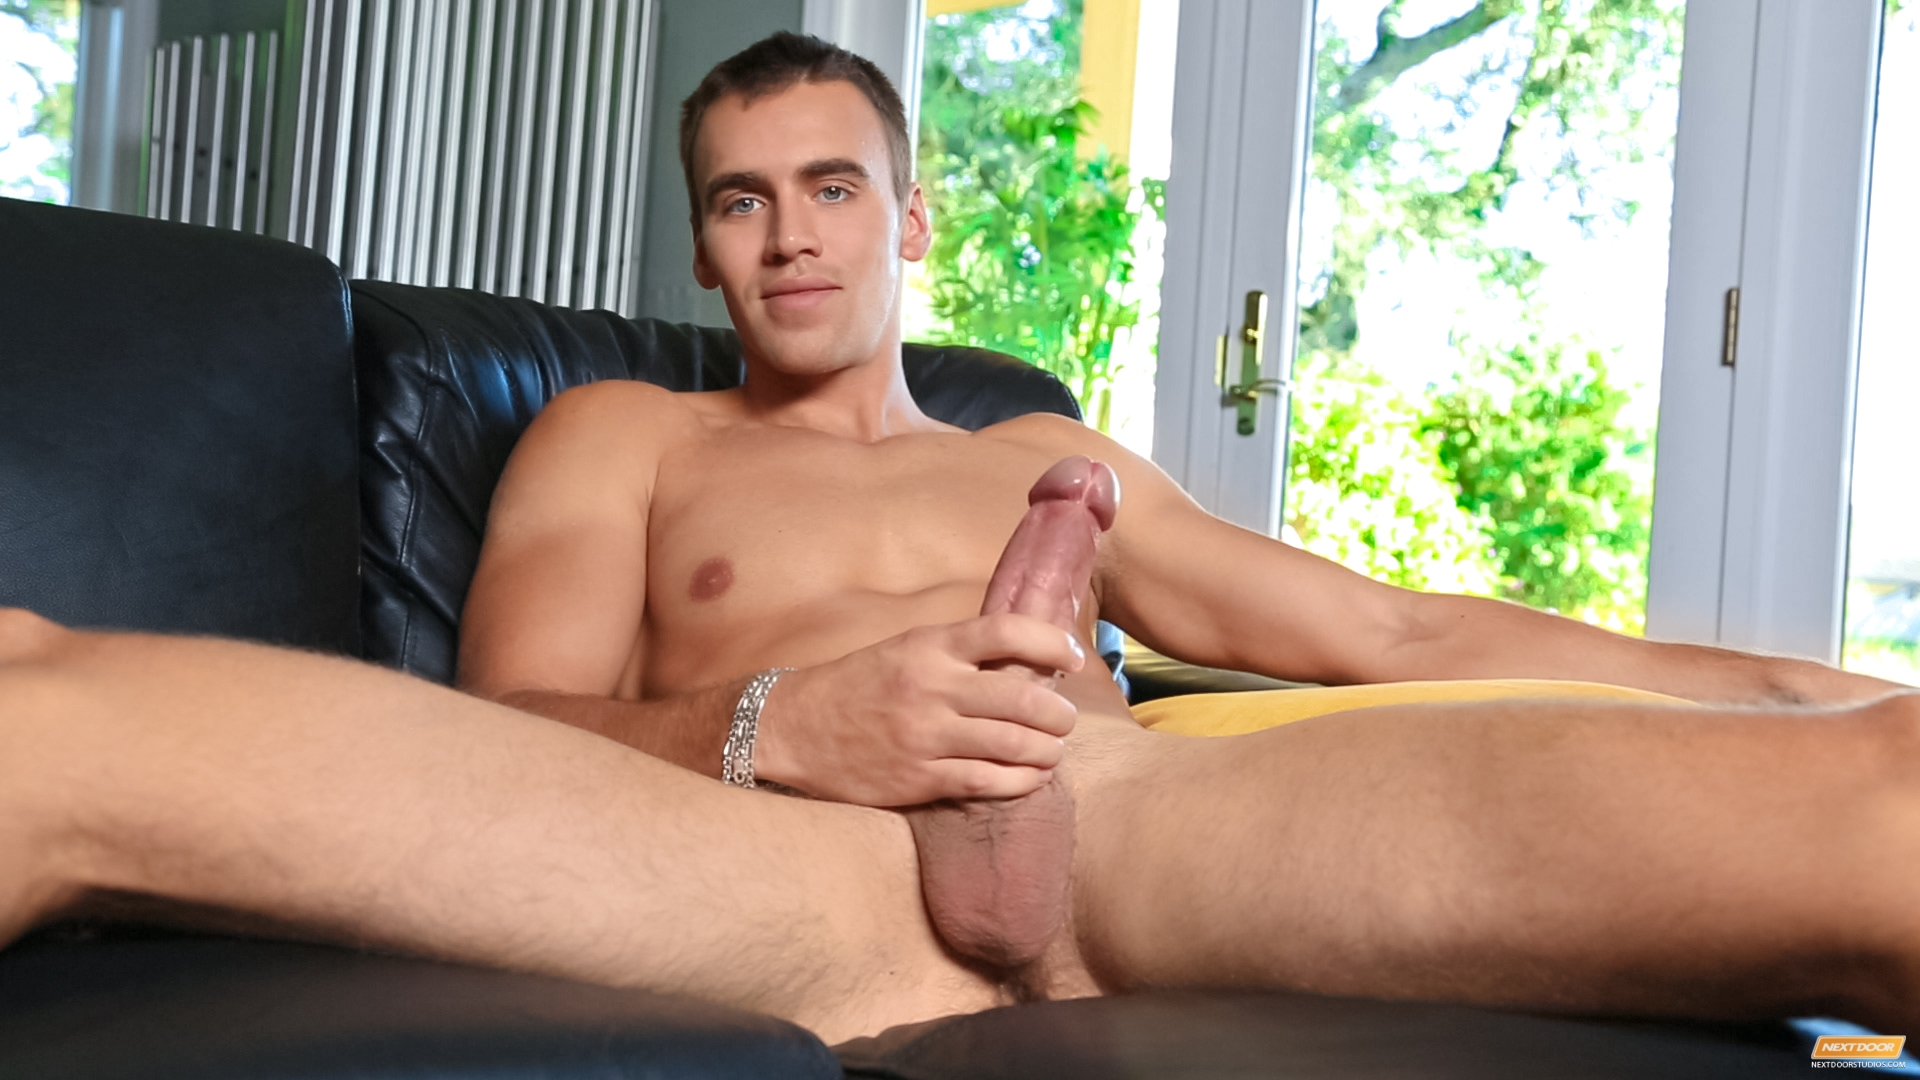 naked-man-jacking-off-interracial-prego-sex